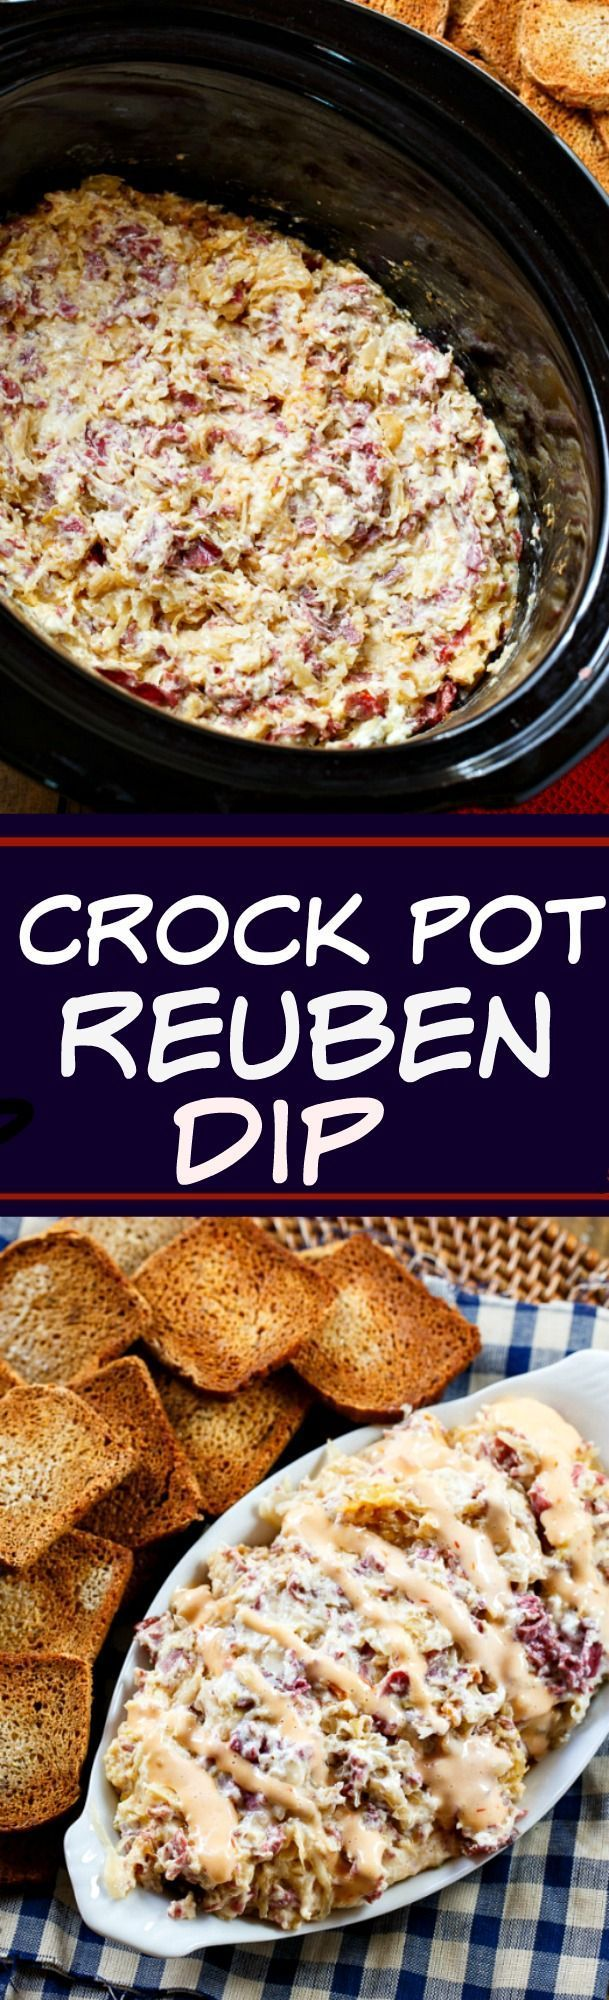 Everyone's favorite sandwich is ever better when it's turned into a dip! This slow cooker ruben dip will be a game day win.